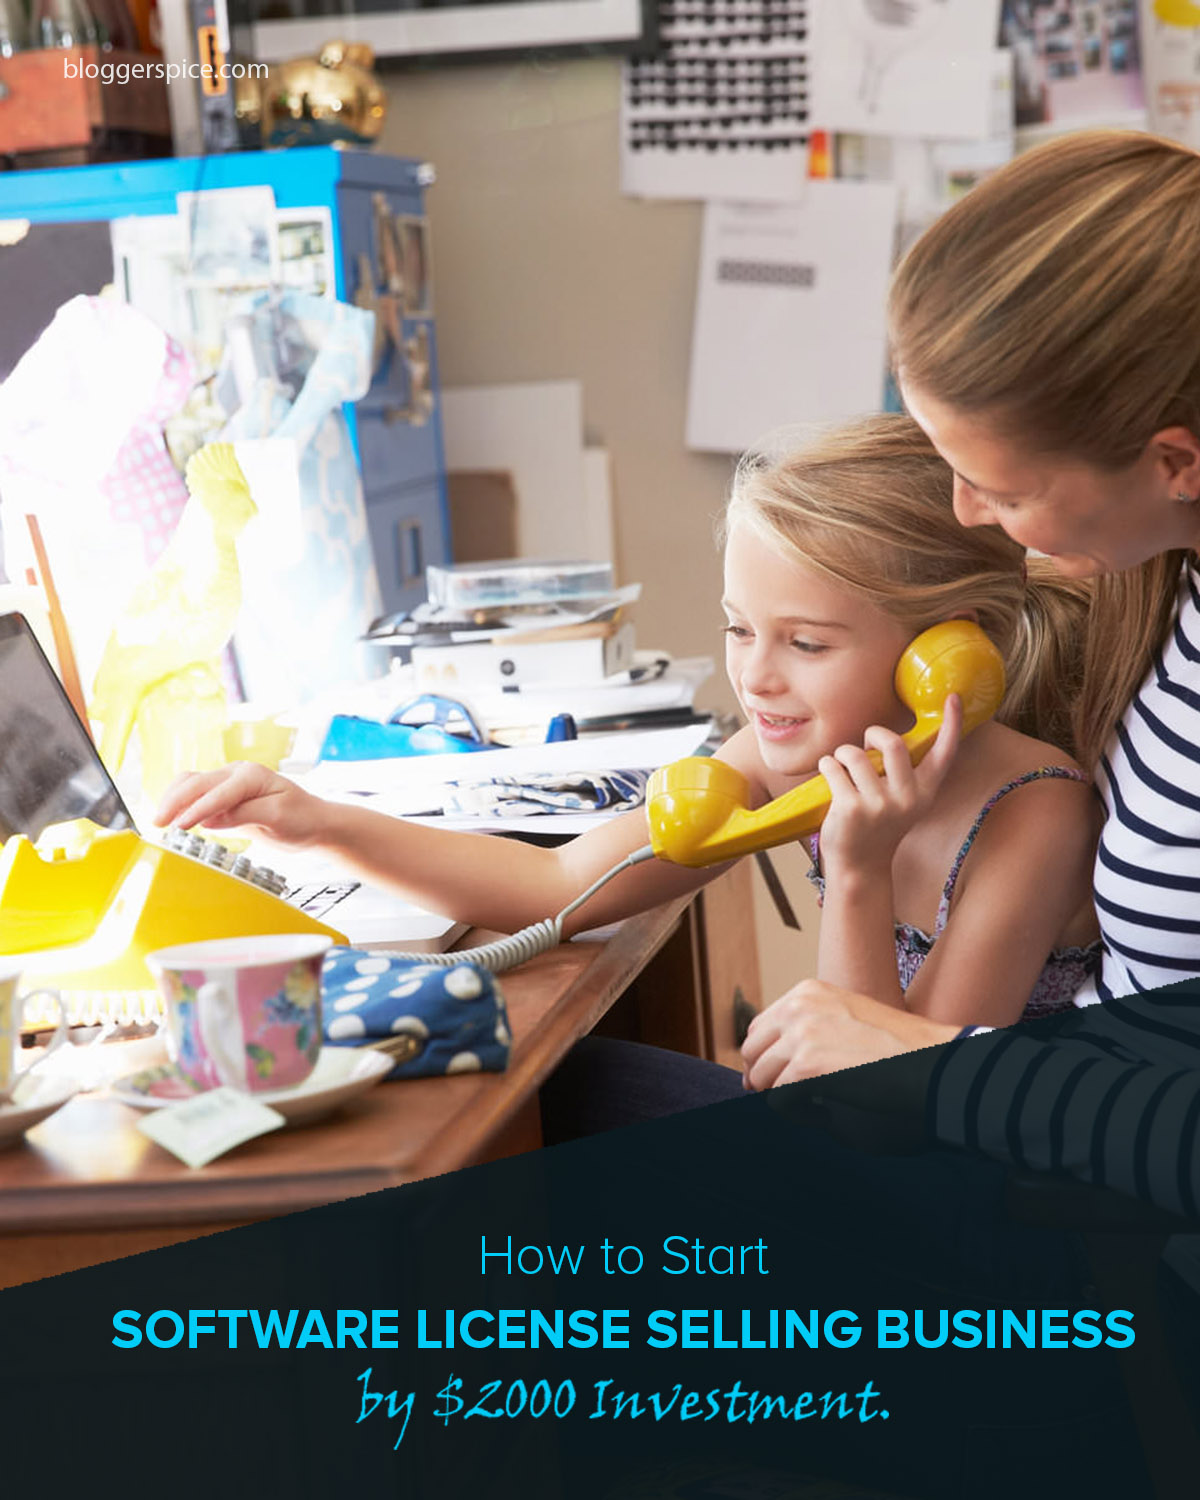 Start bulk software license selling Business by $2000 Investment